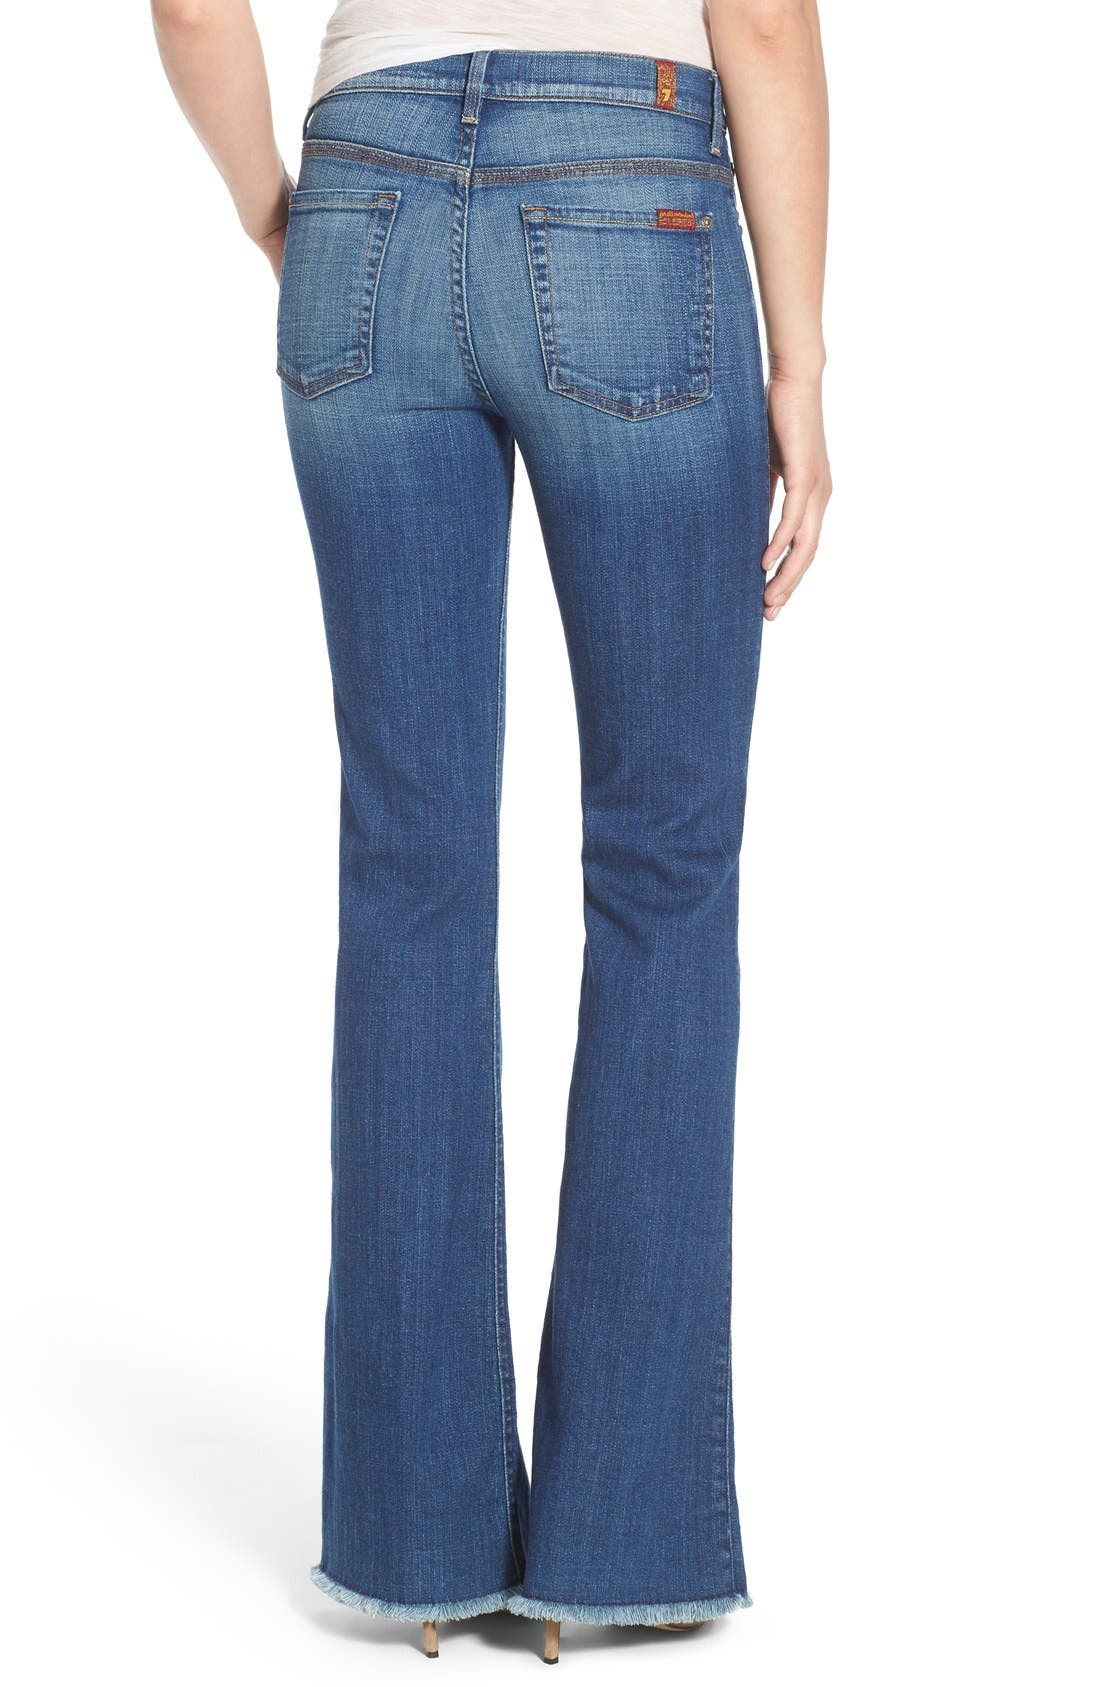 Alternate Image 2  - 7 For All Mankind® 'Ginger' High Rise Raw Hem Flare Jeans (Athens Broken Twill)